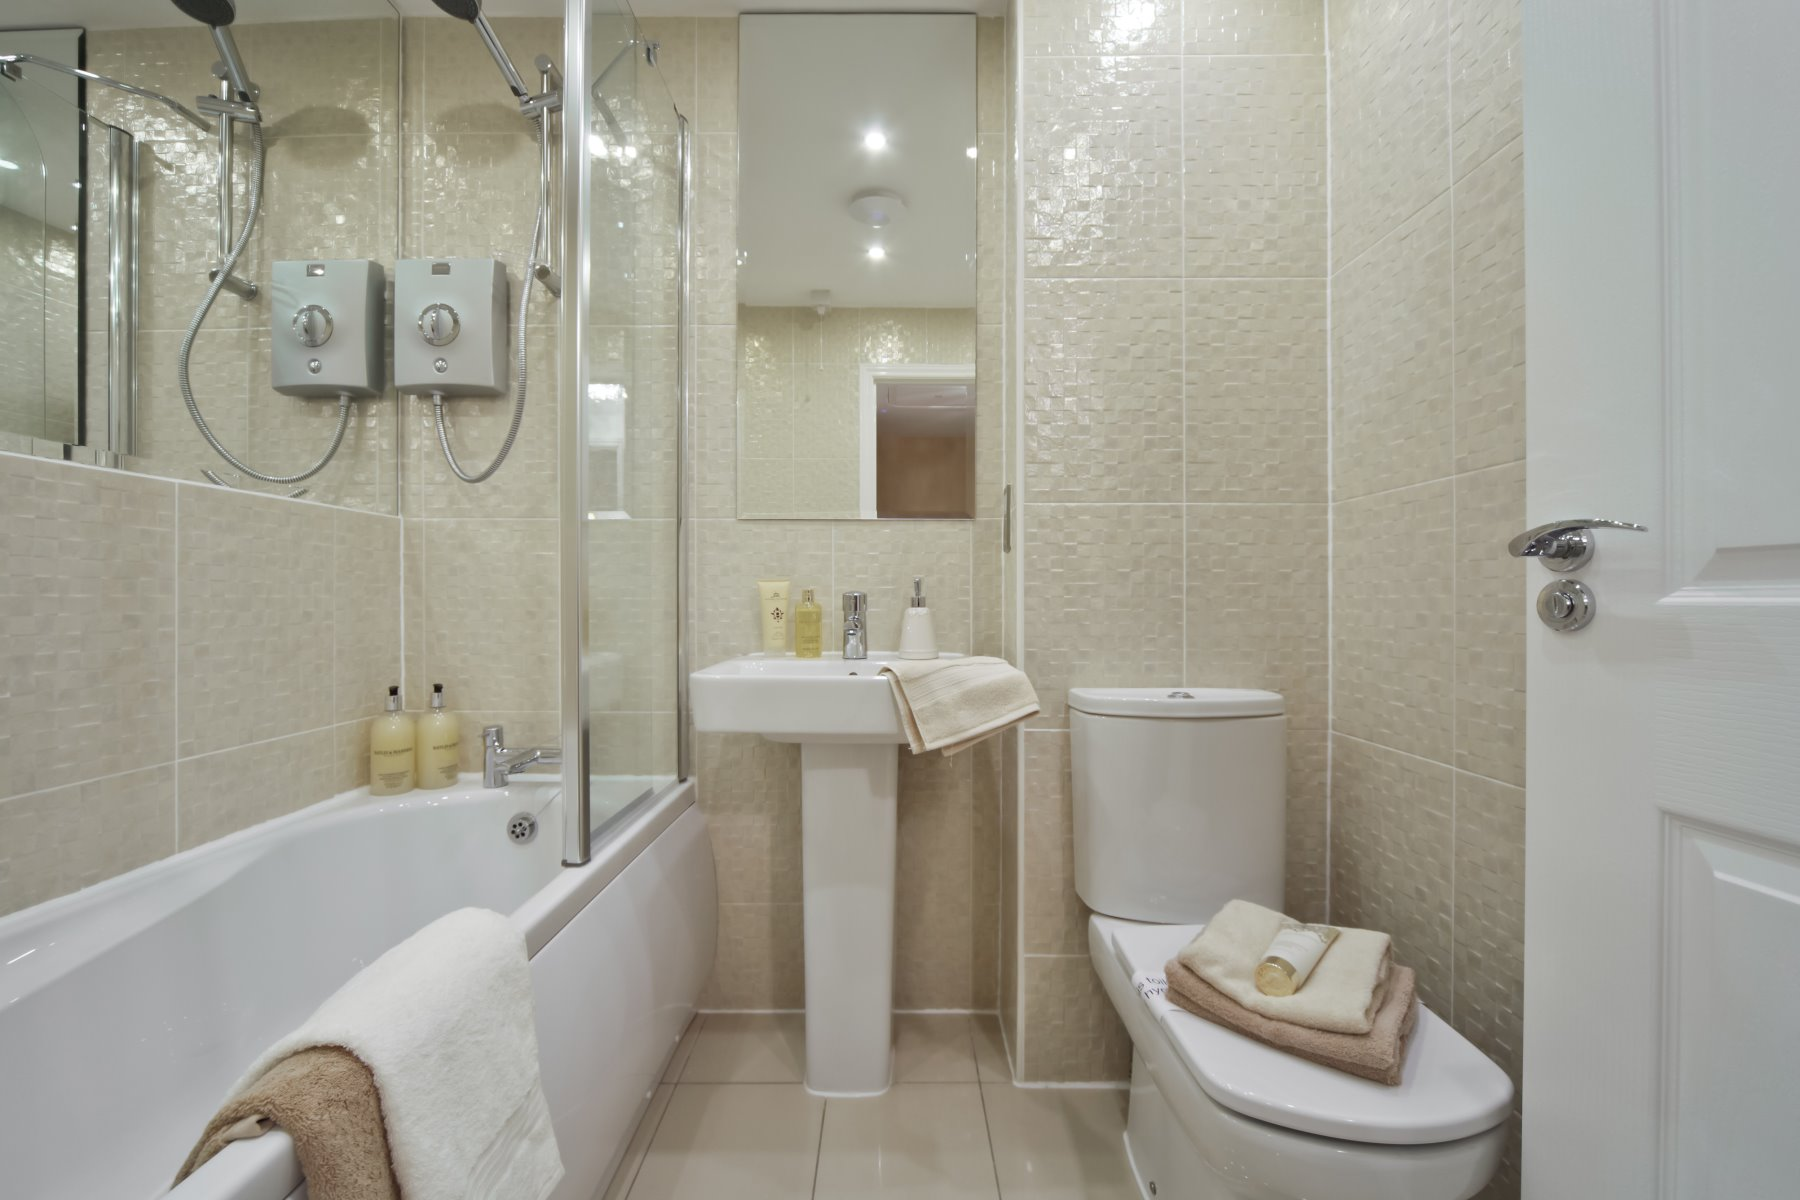 Earlsford Showhome Bathroom - Sandbrook View